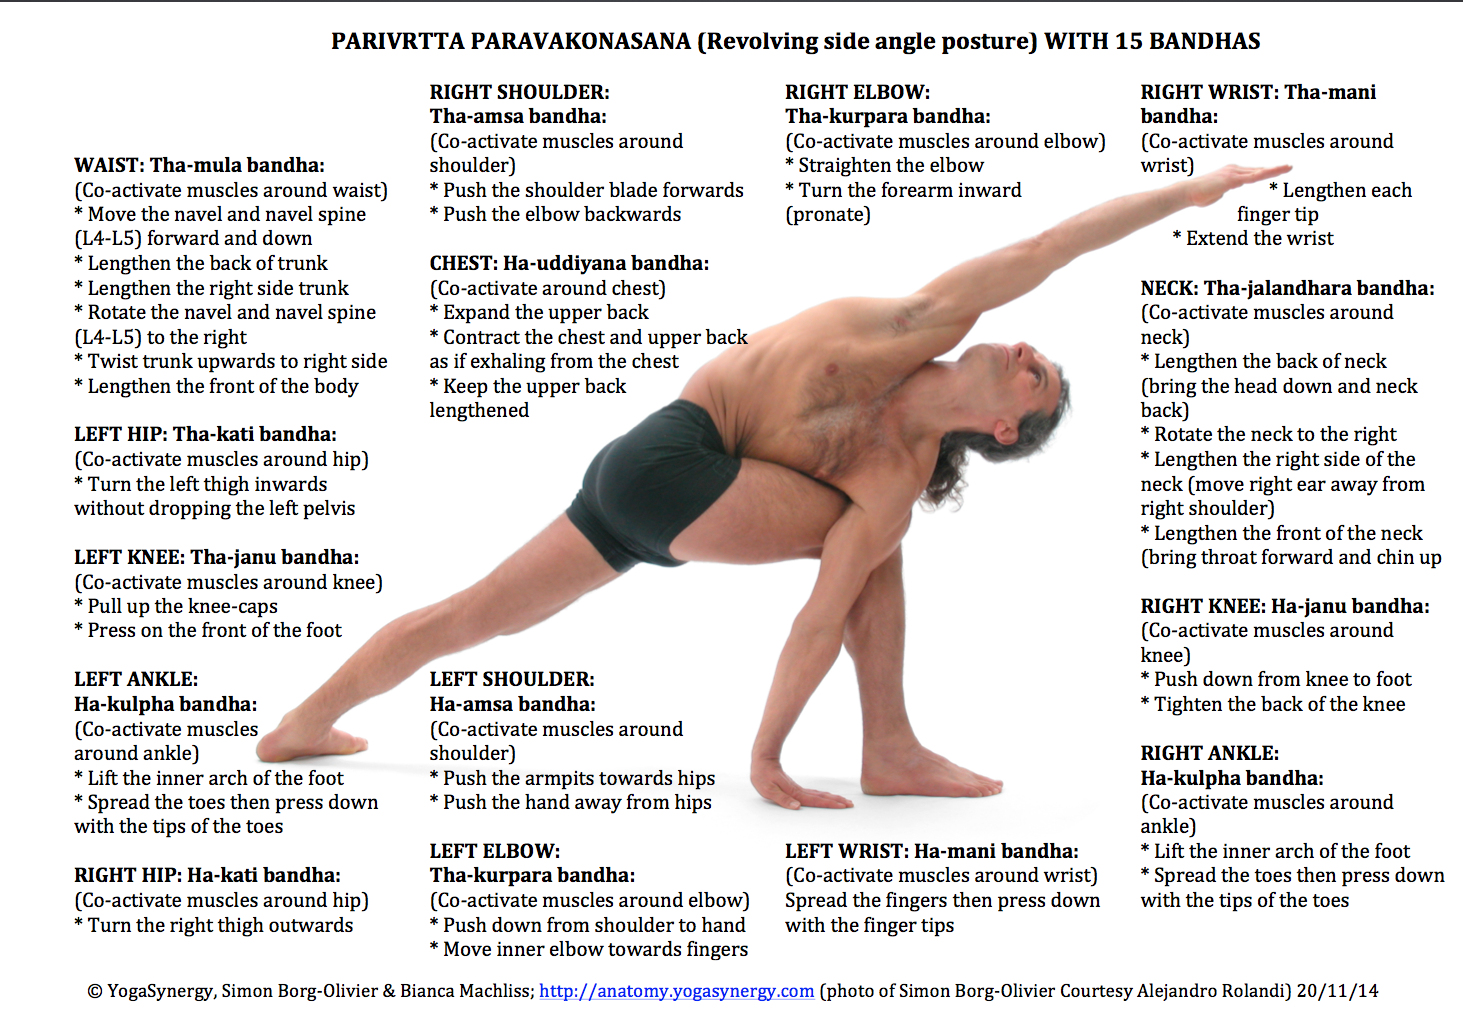 Detailed instructions for Parivrtta Parsvakonasana (Lateral angle posture) by Simon Borg-Olivier (Please click on photo to enlarge)